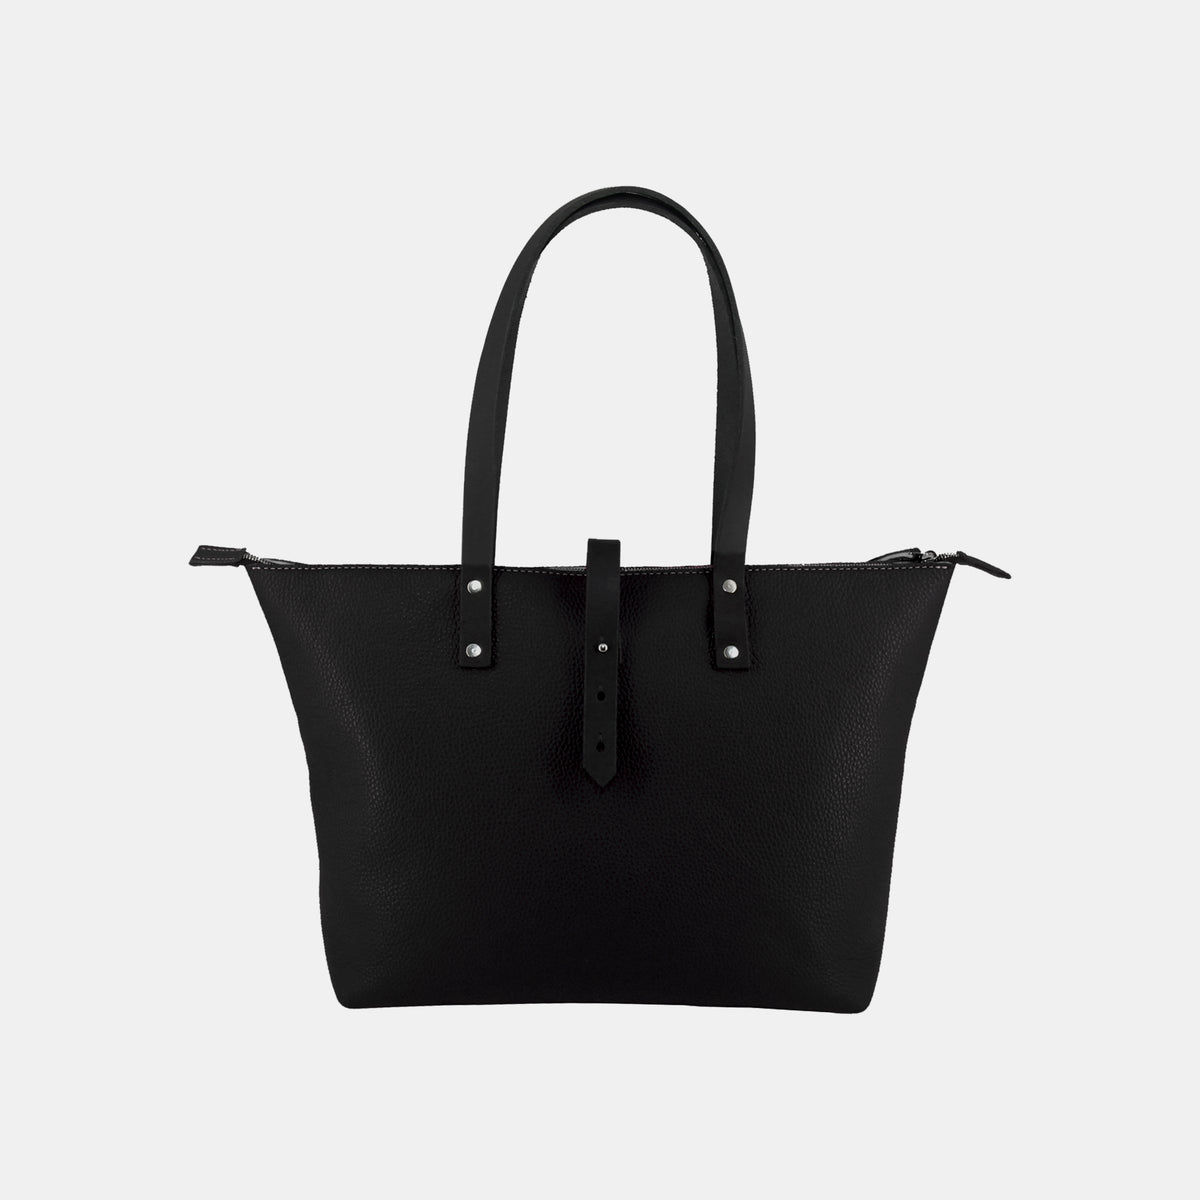 Italian Leather Tote with Wool Felt Lining and Zip - RYAN London